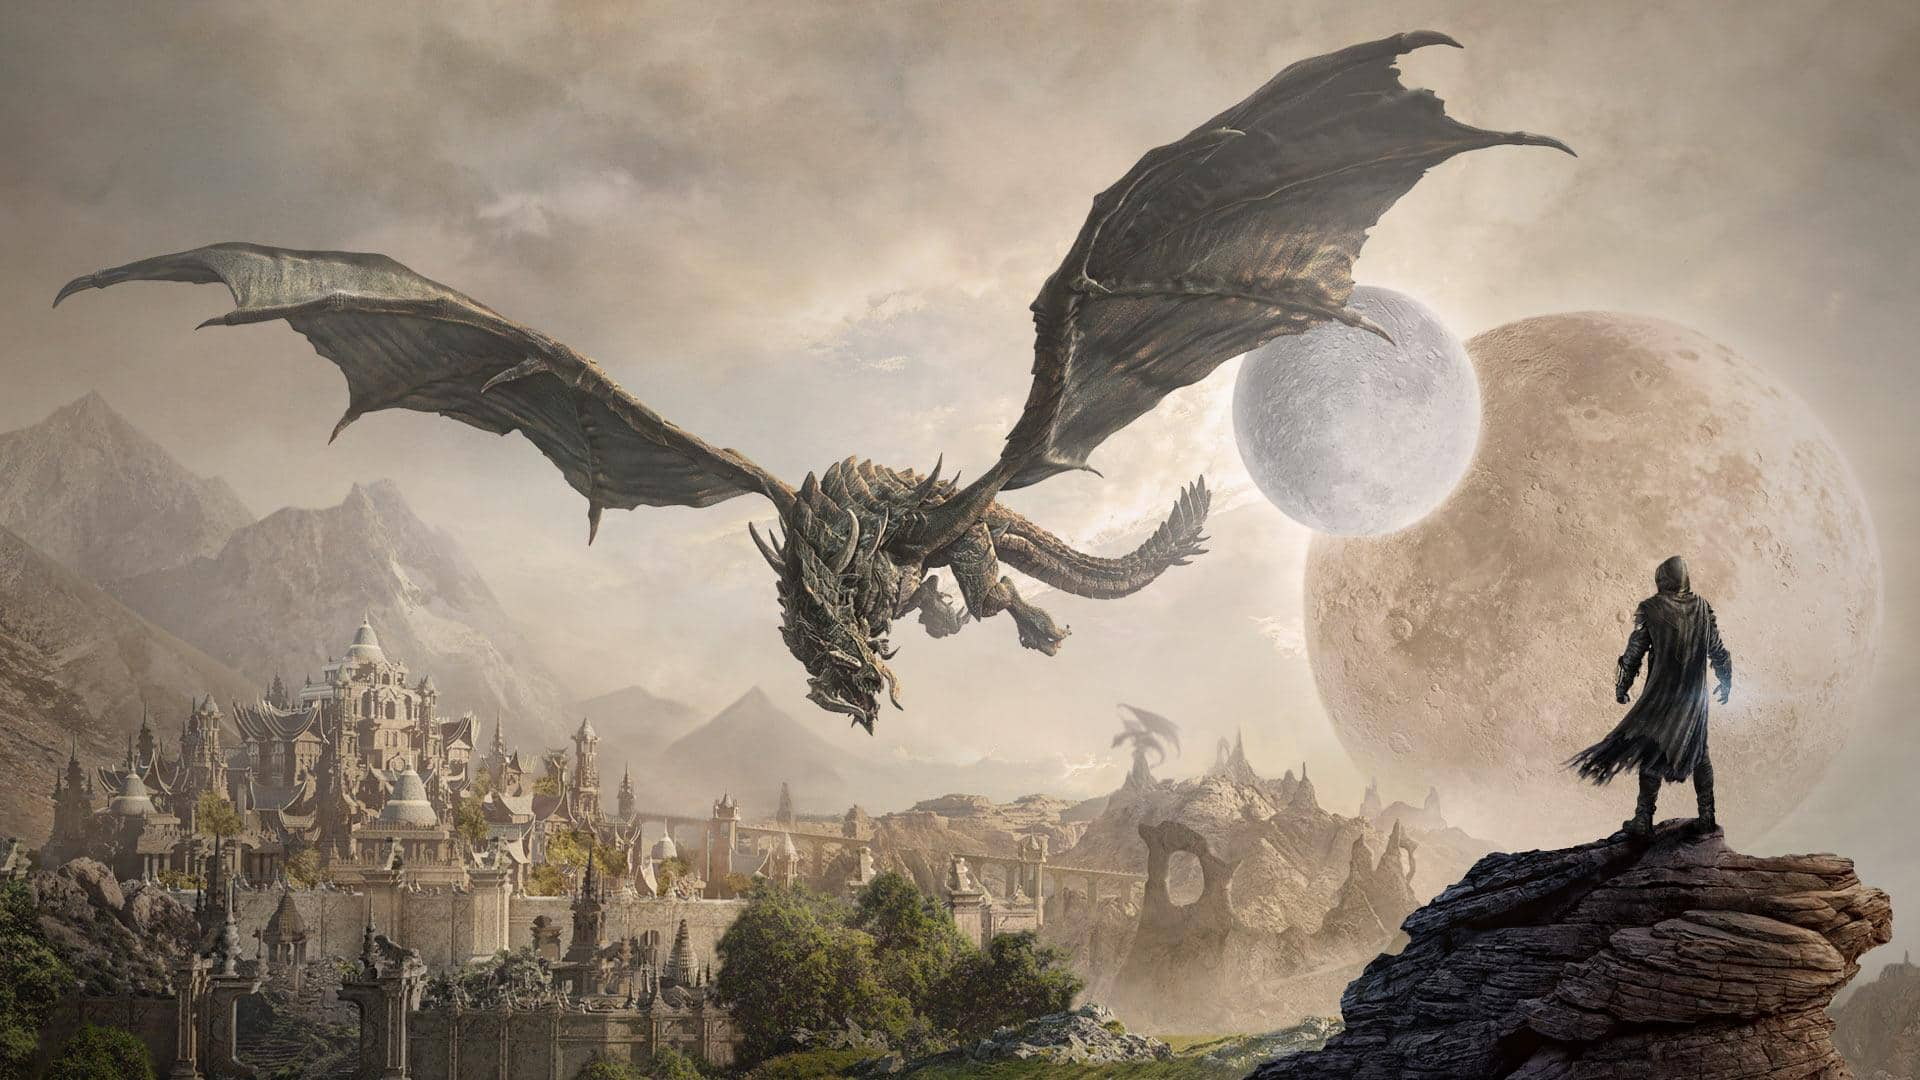 Welcome To The Elder Scrolls Online Official Website Elder Scrolls Art Elder Scrolls Online Elder Scrolls